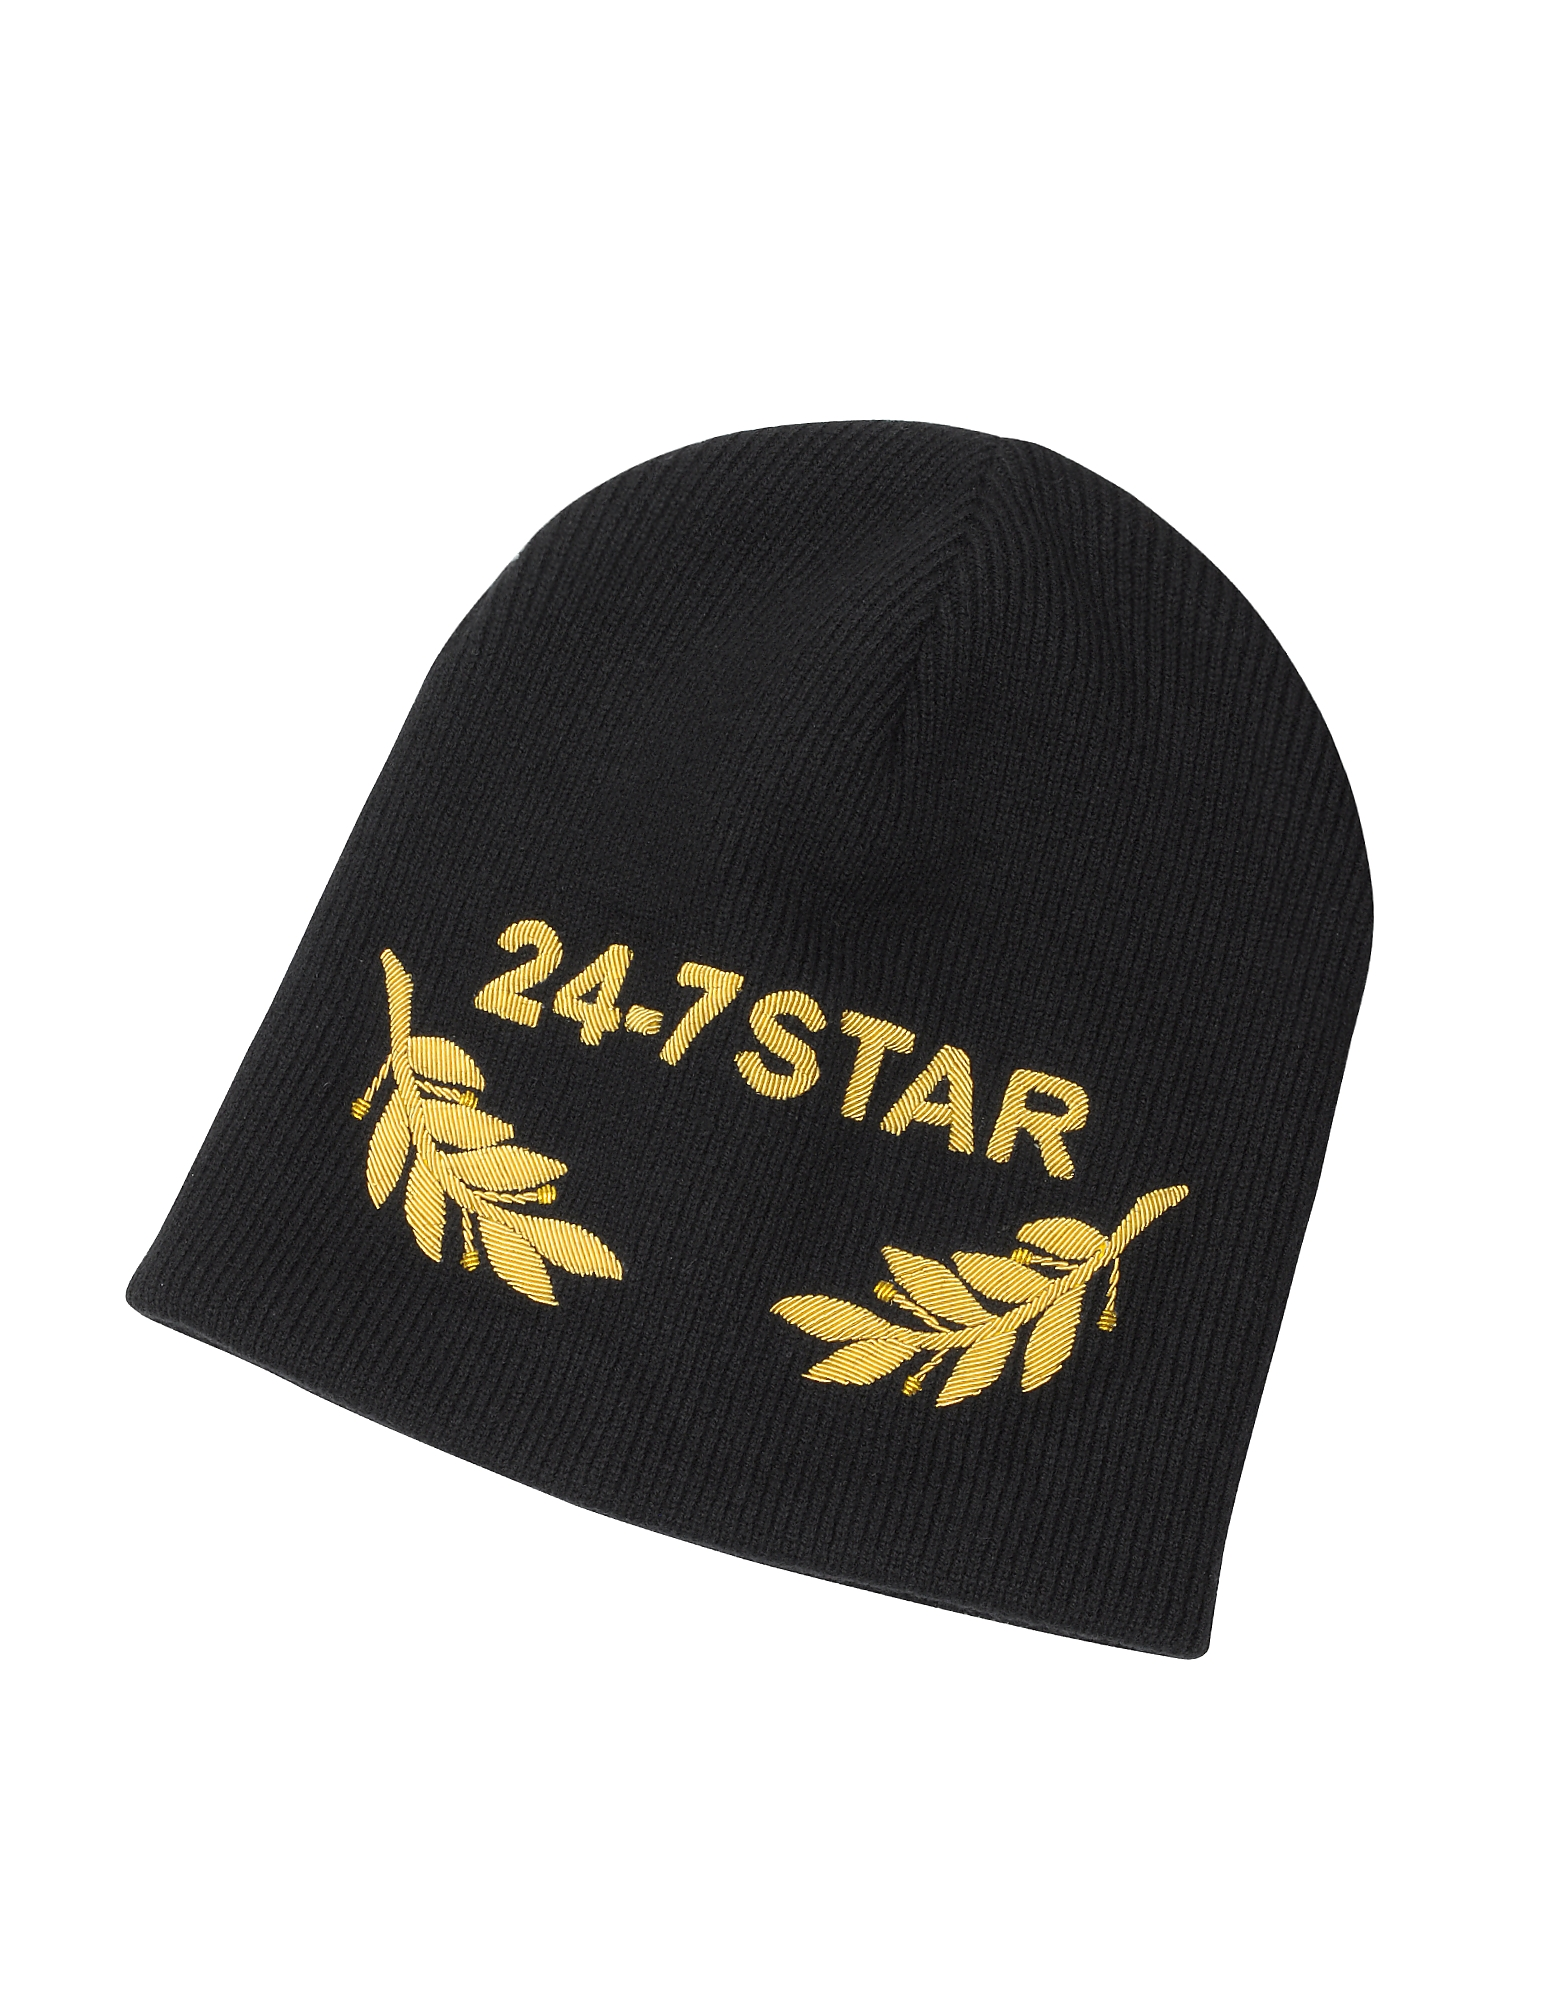 24-7 Star Icon Black Wool Beanie